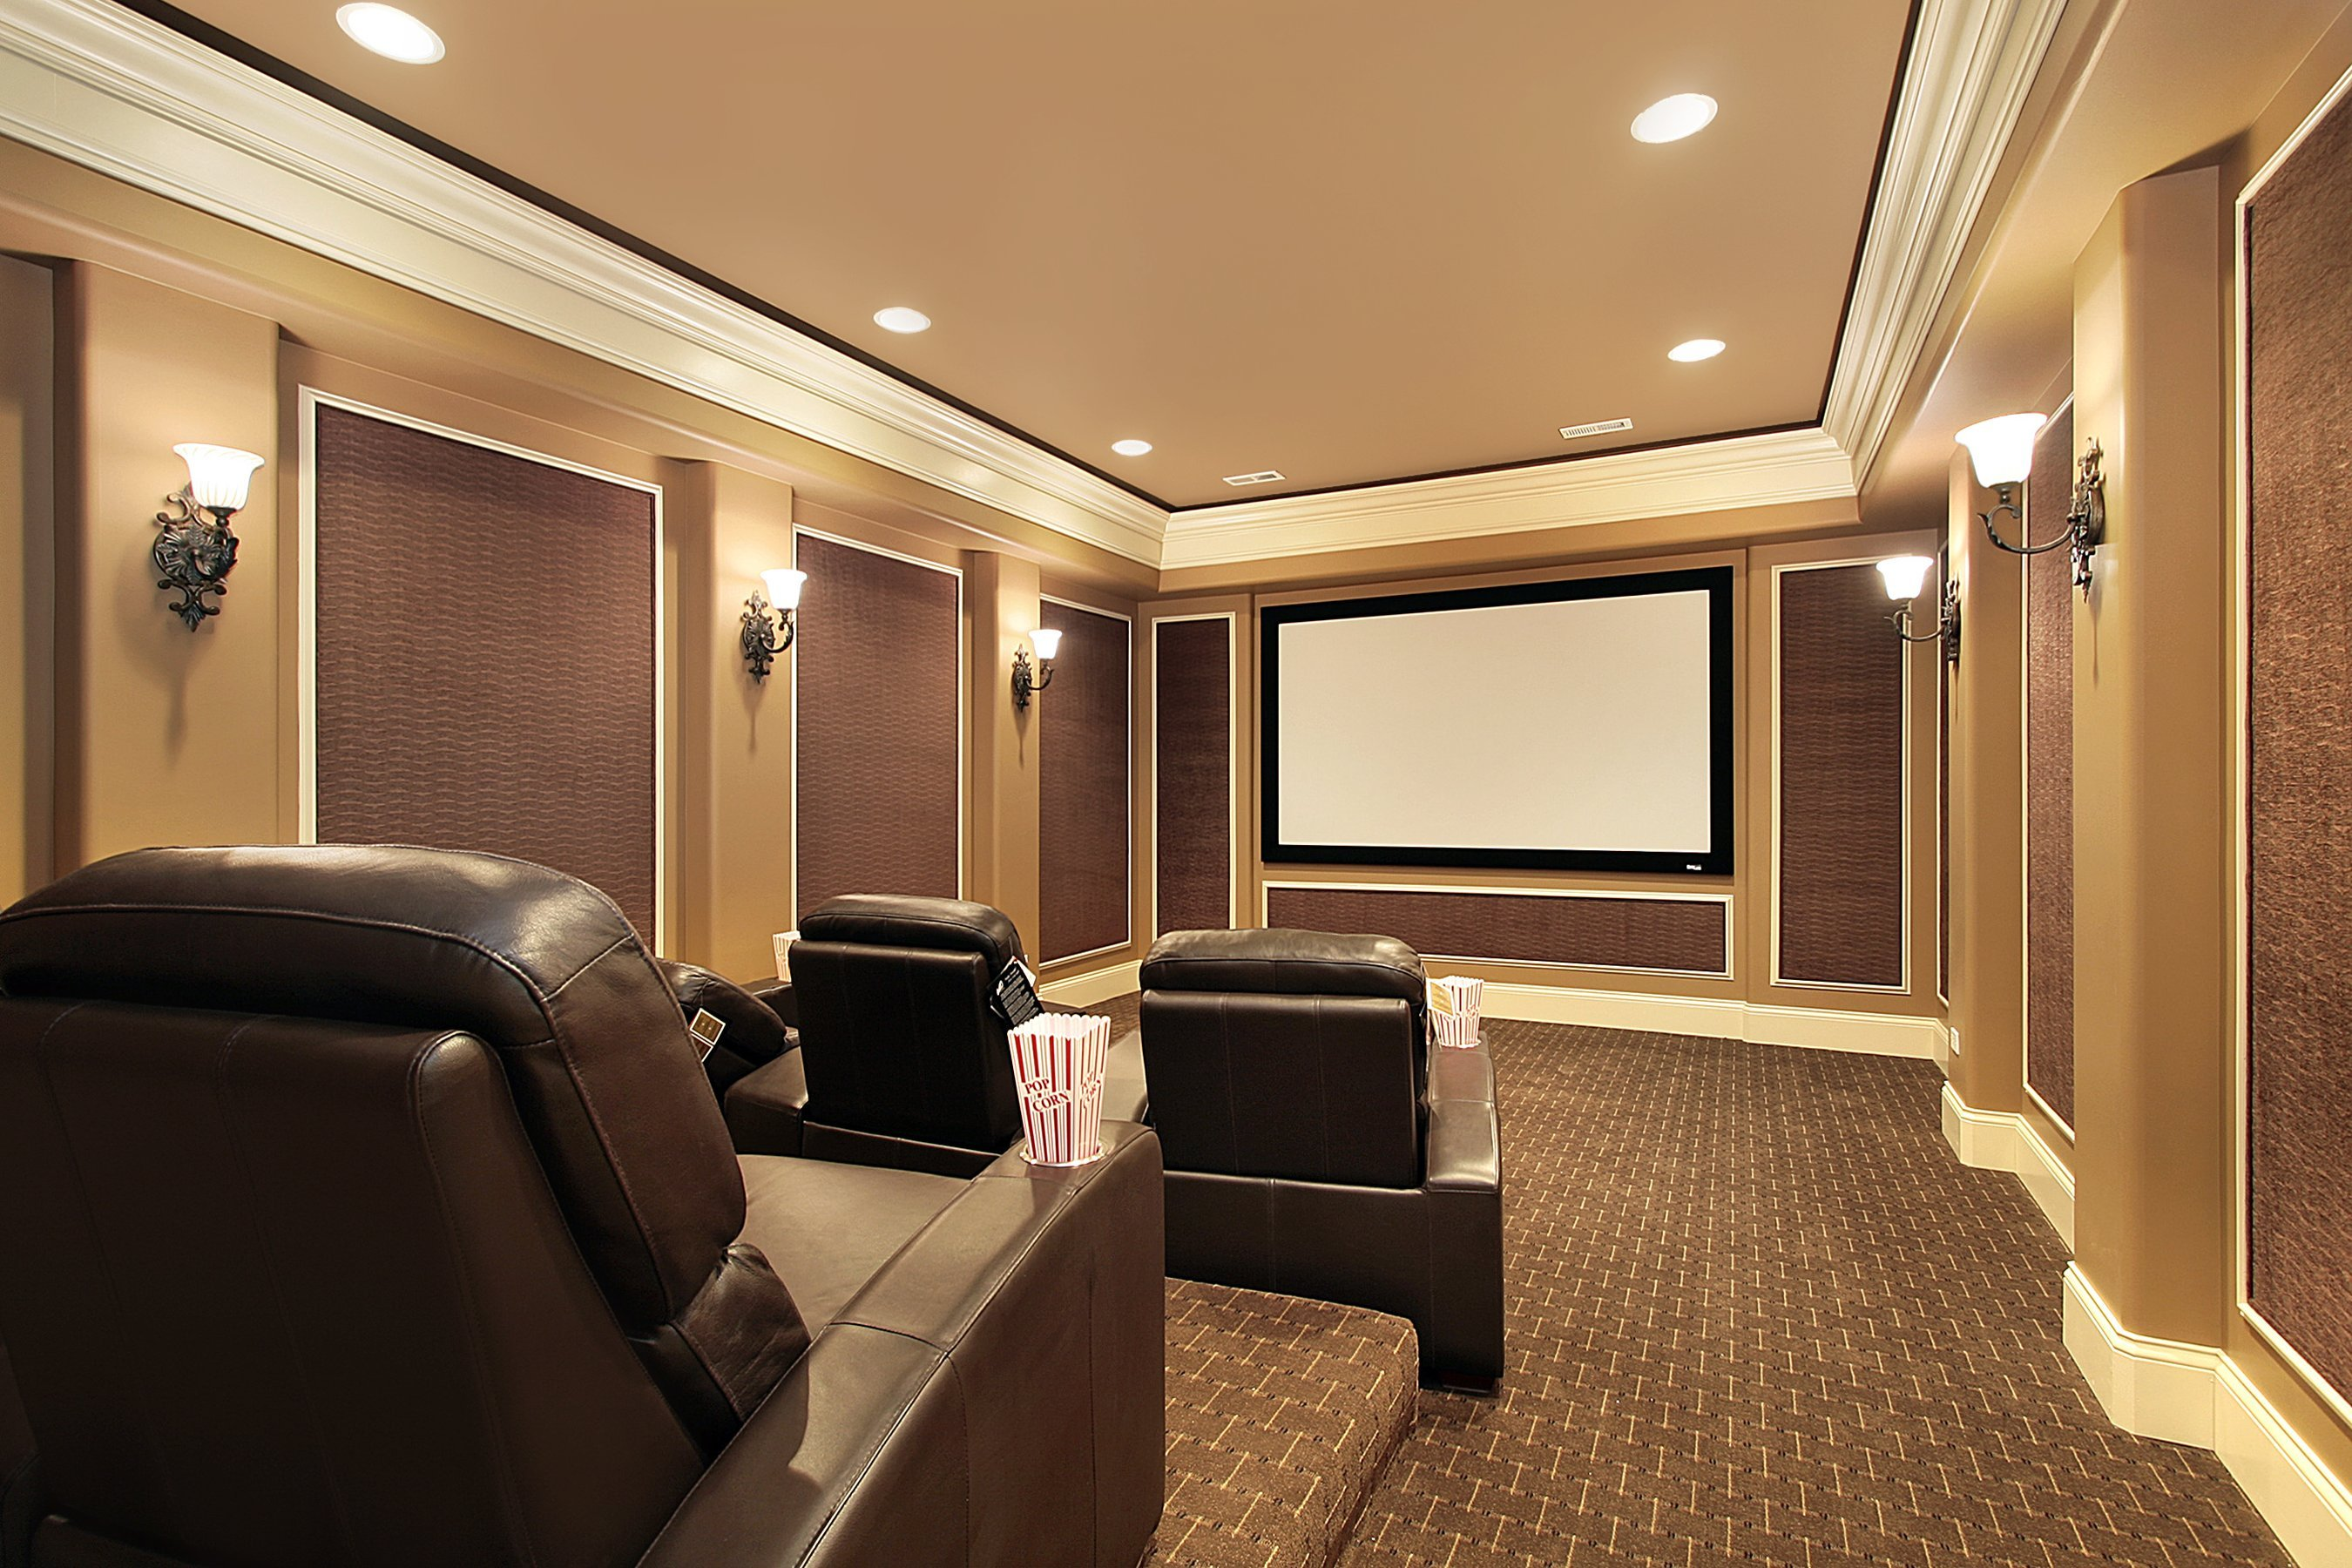 home theater lighting done right super bright leds. Black Bedroom Furniture Sets. Home Design Ideas